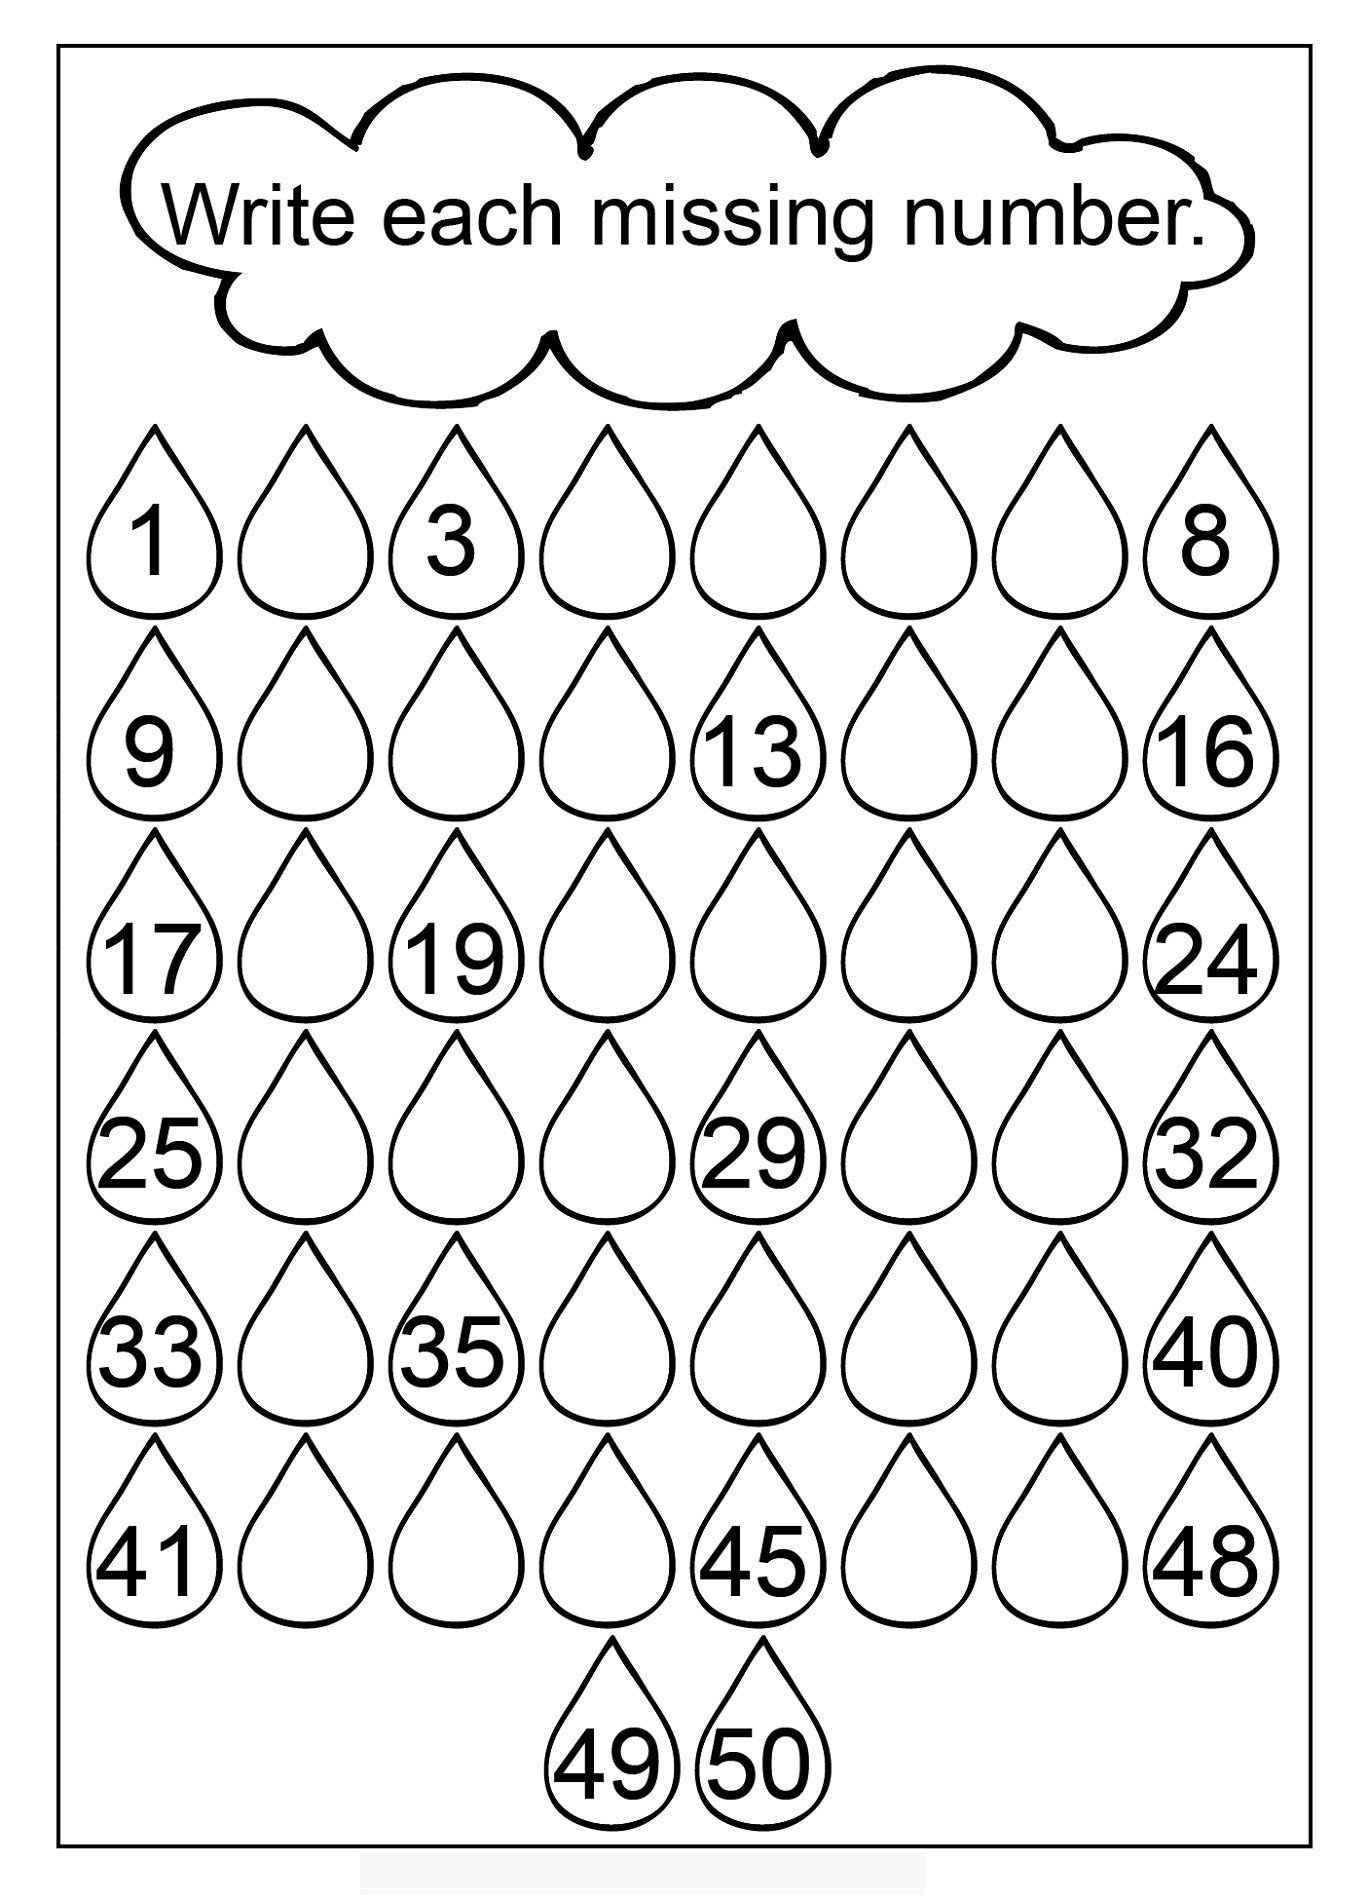 Kindergarten Number Recognition Worksheets Worksheets Kindergarten Missing Number Worksheet Printable